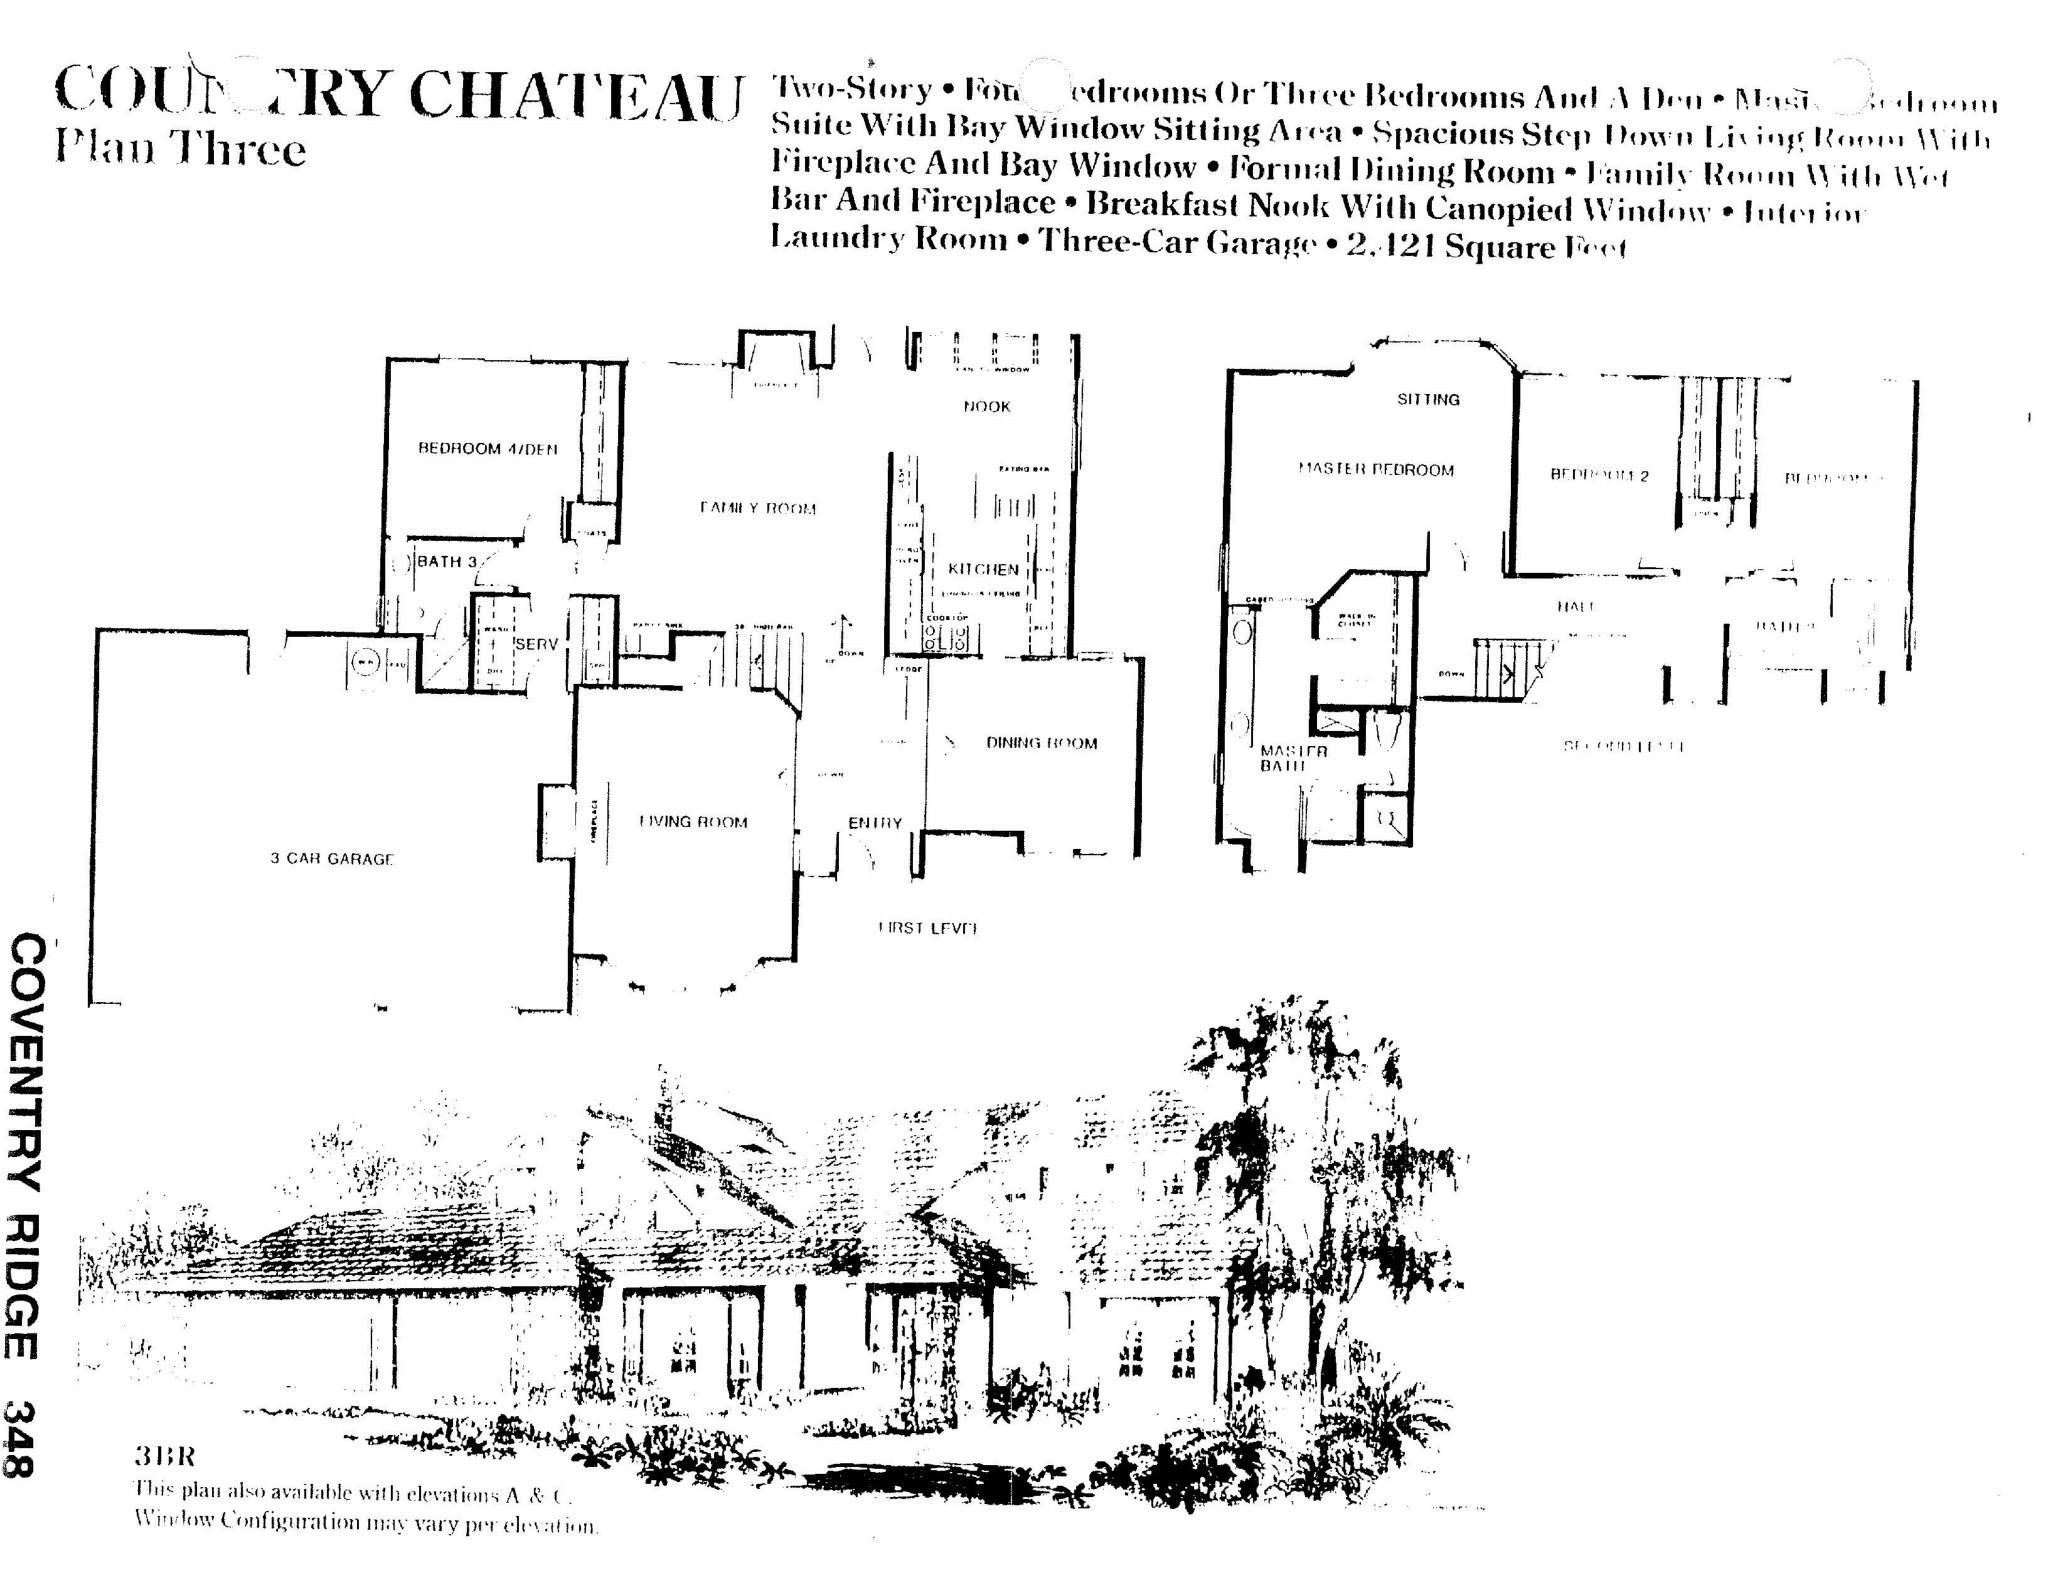 Coventry Ridge - Country Chateau - Plan Three